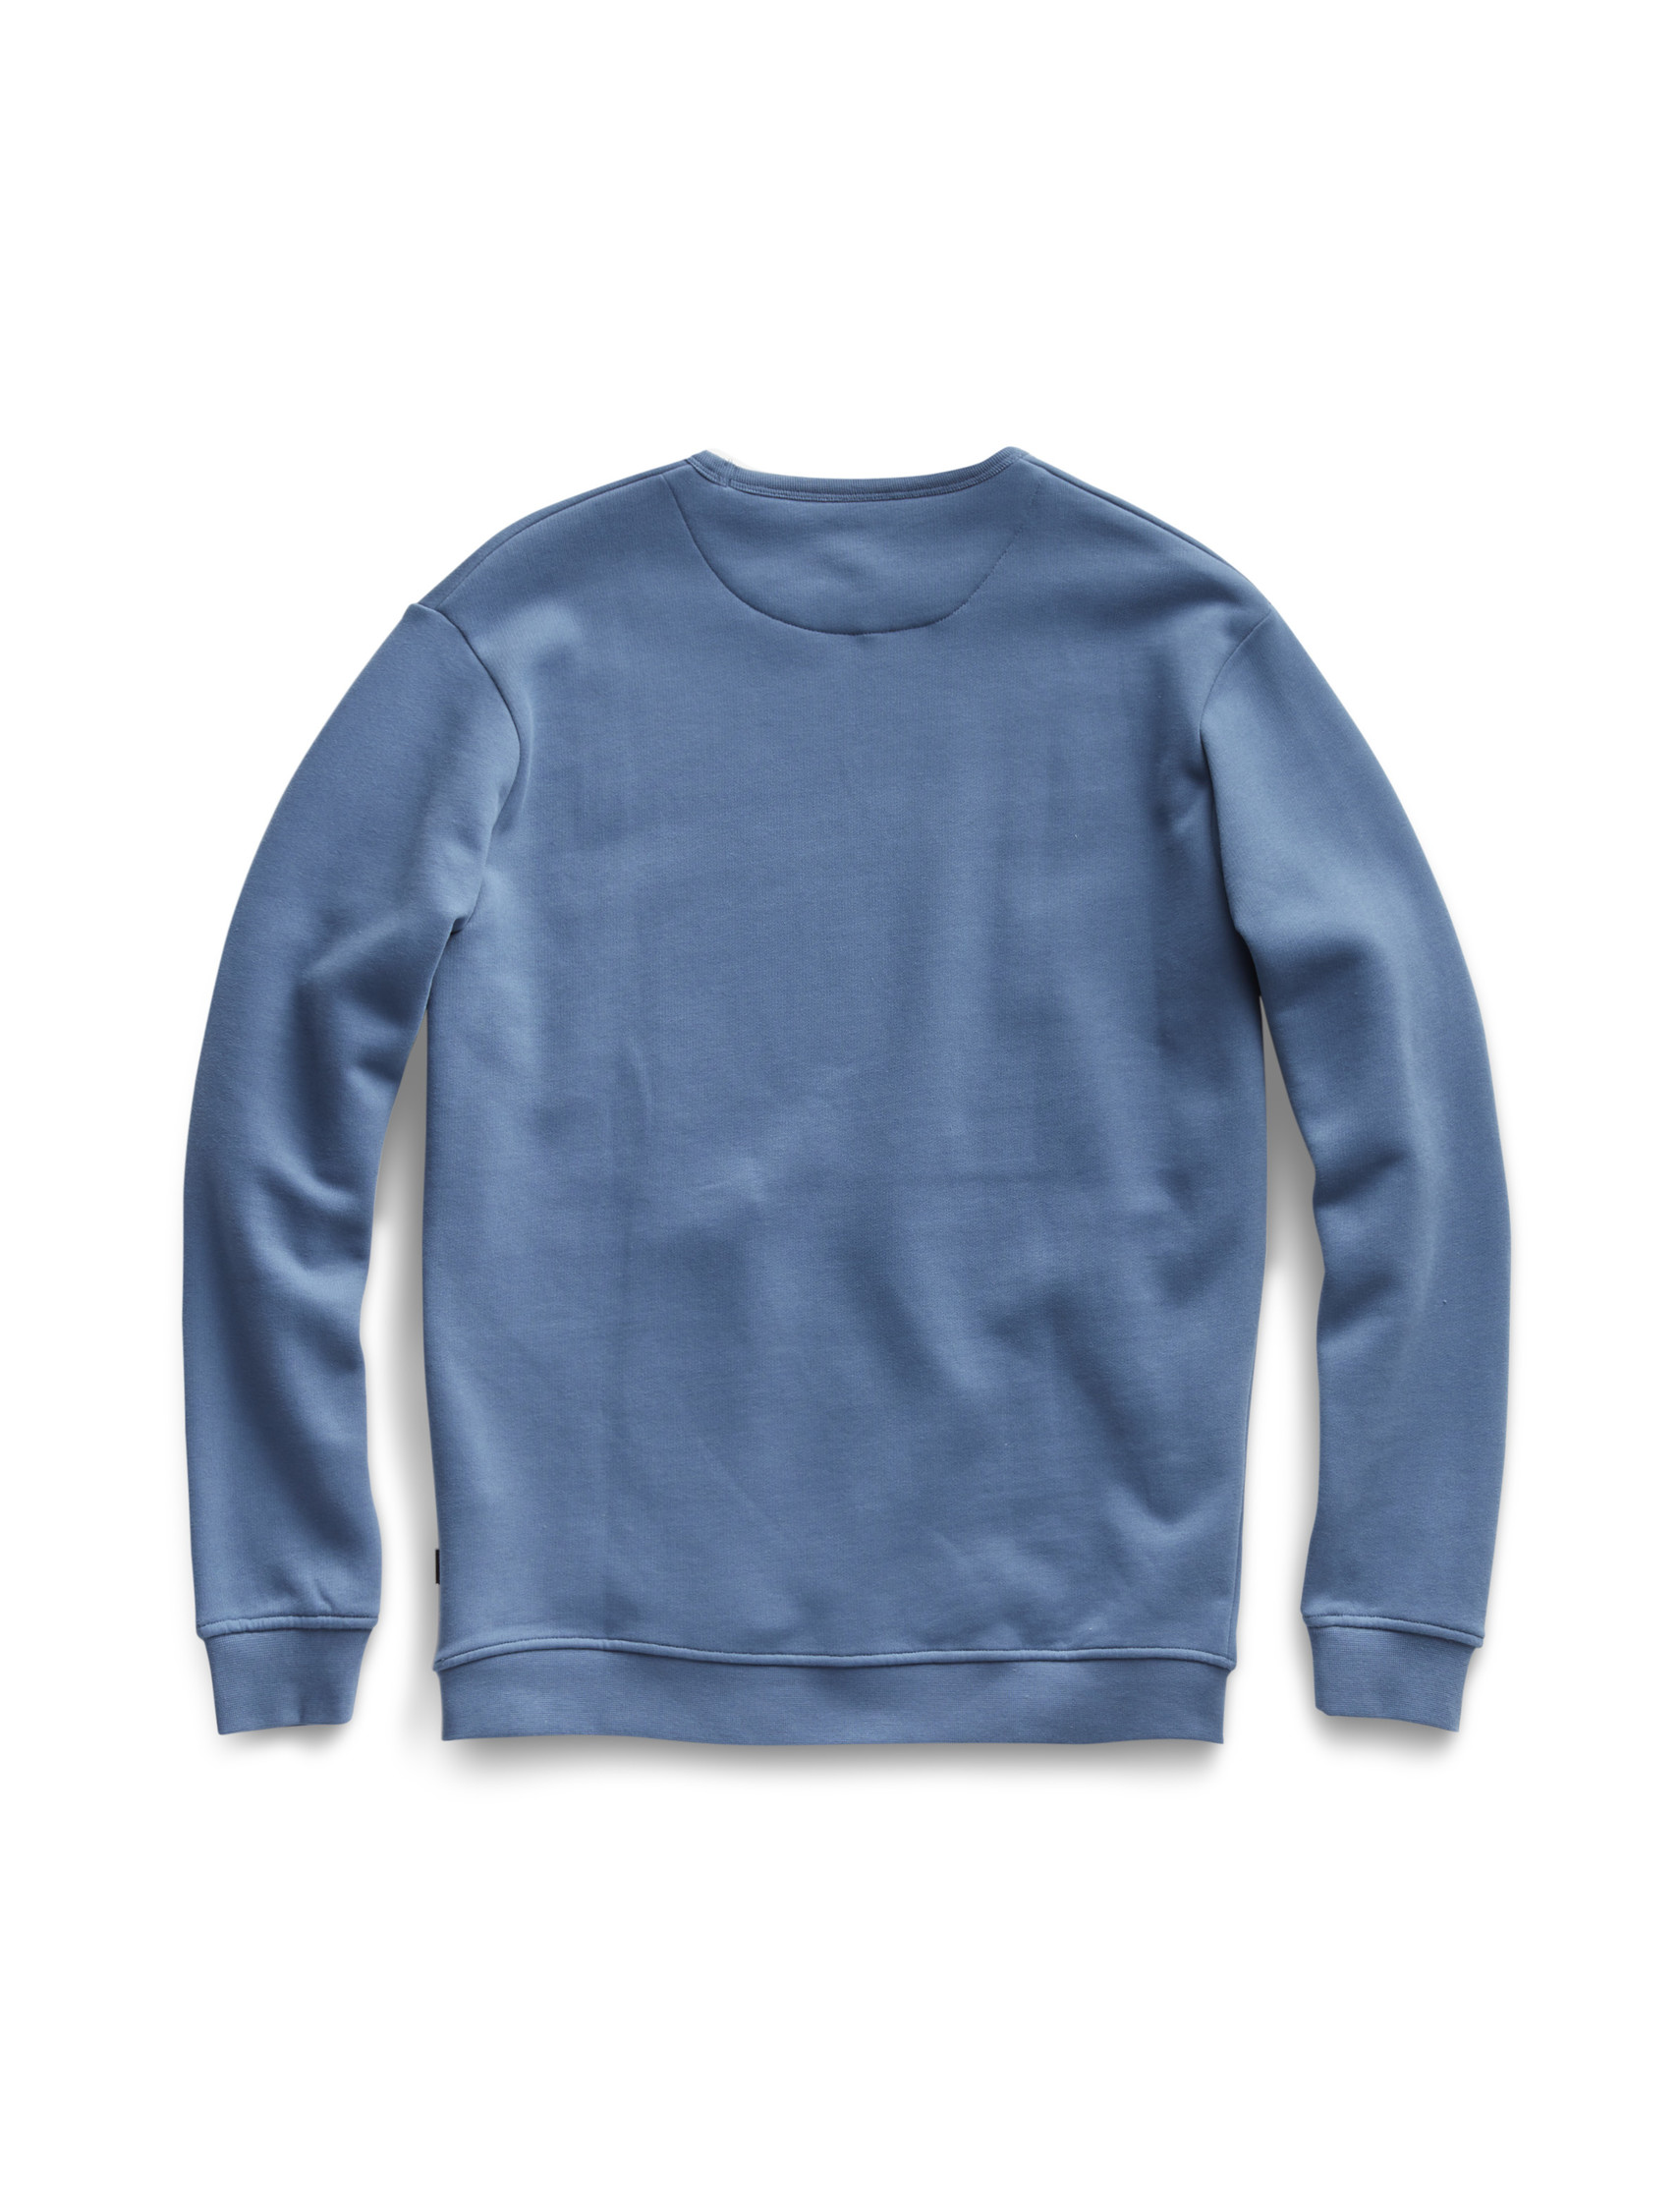 Beach Cartel Crewneck - Charcoal Blue